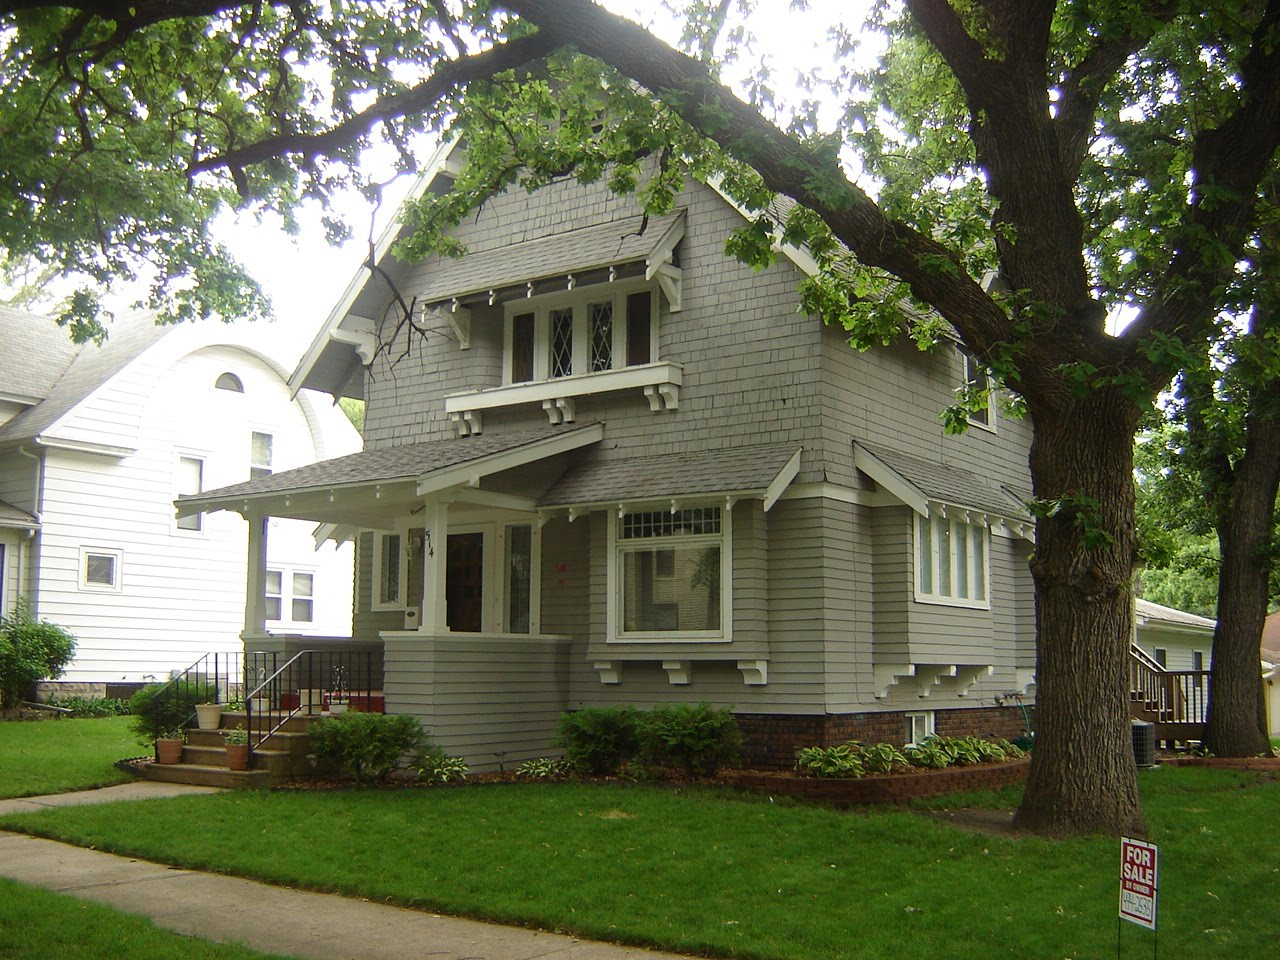 North iowa fsbo beautiful craftsman home for sale for Craftsman house for sale